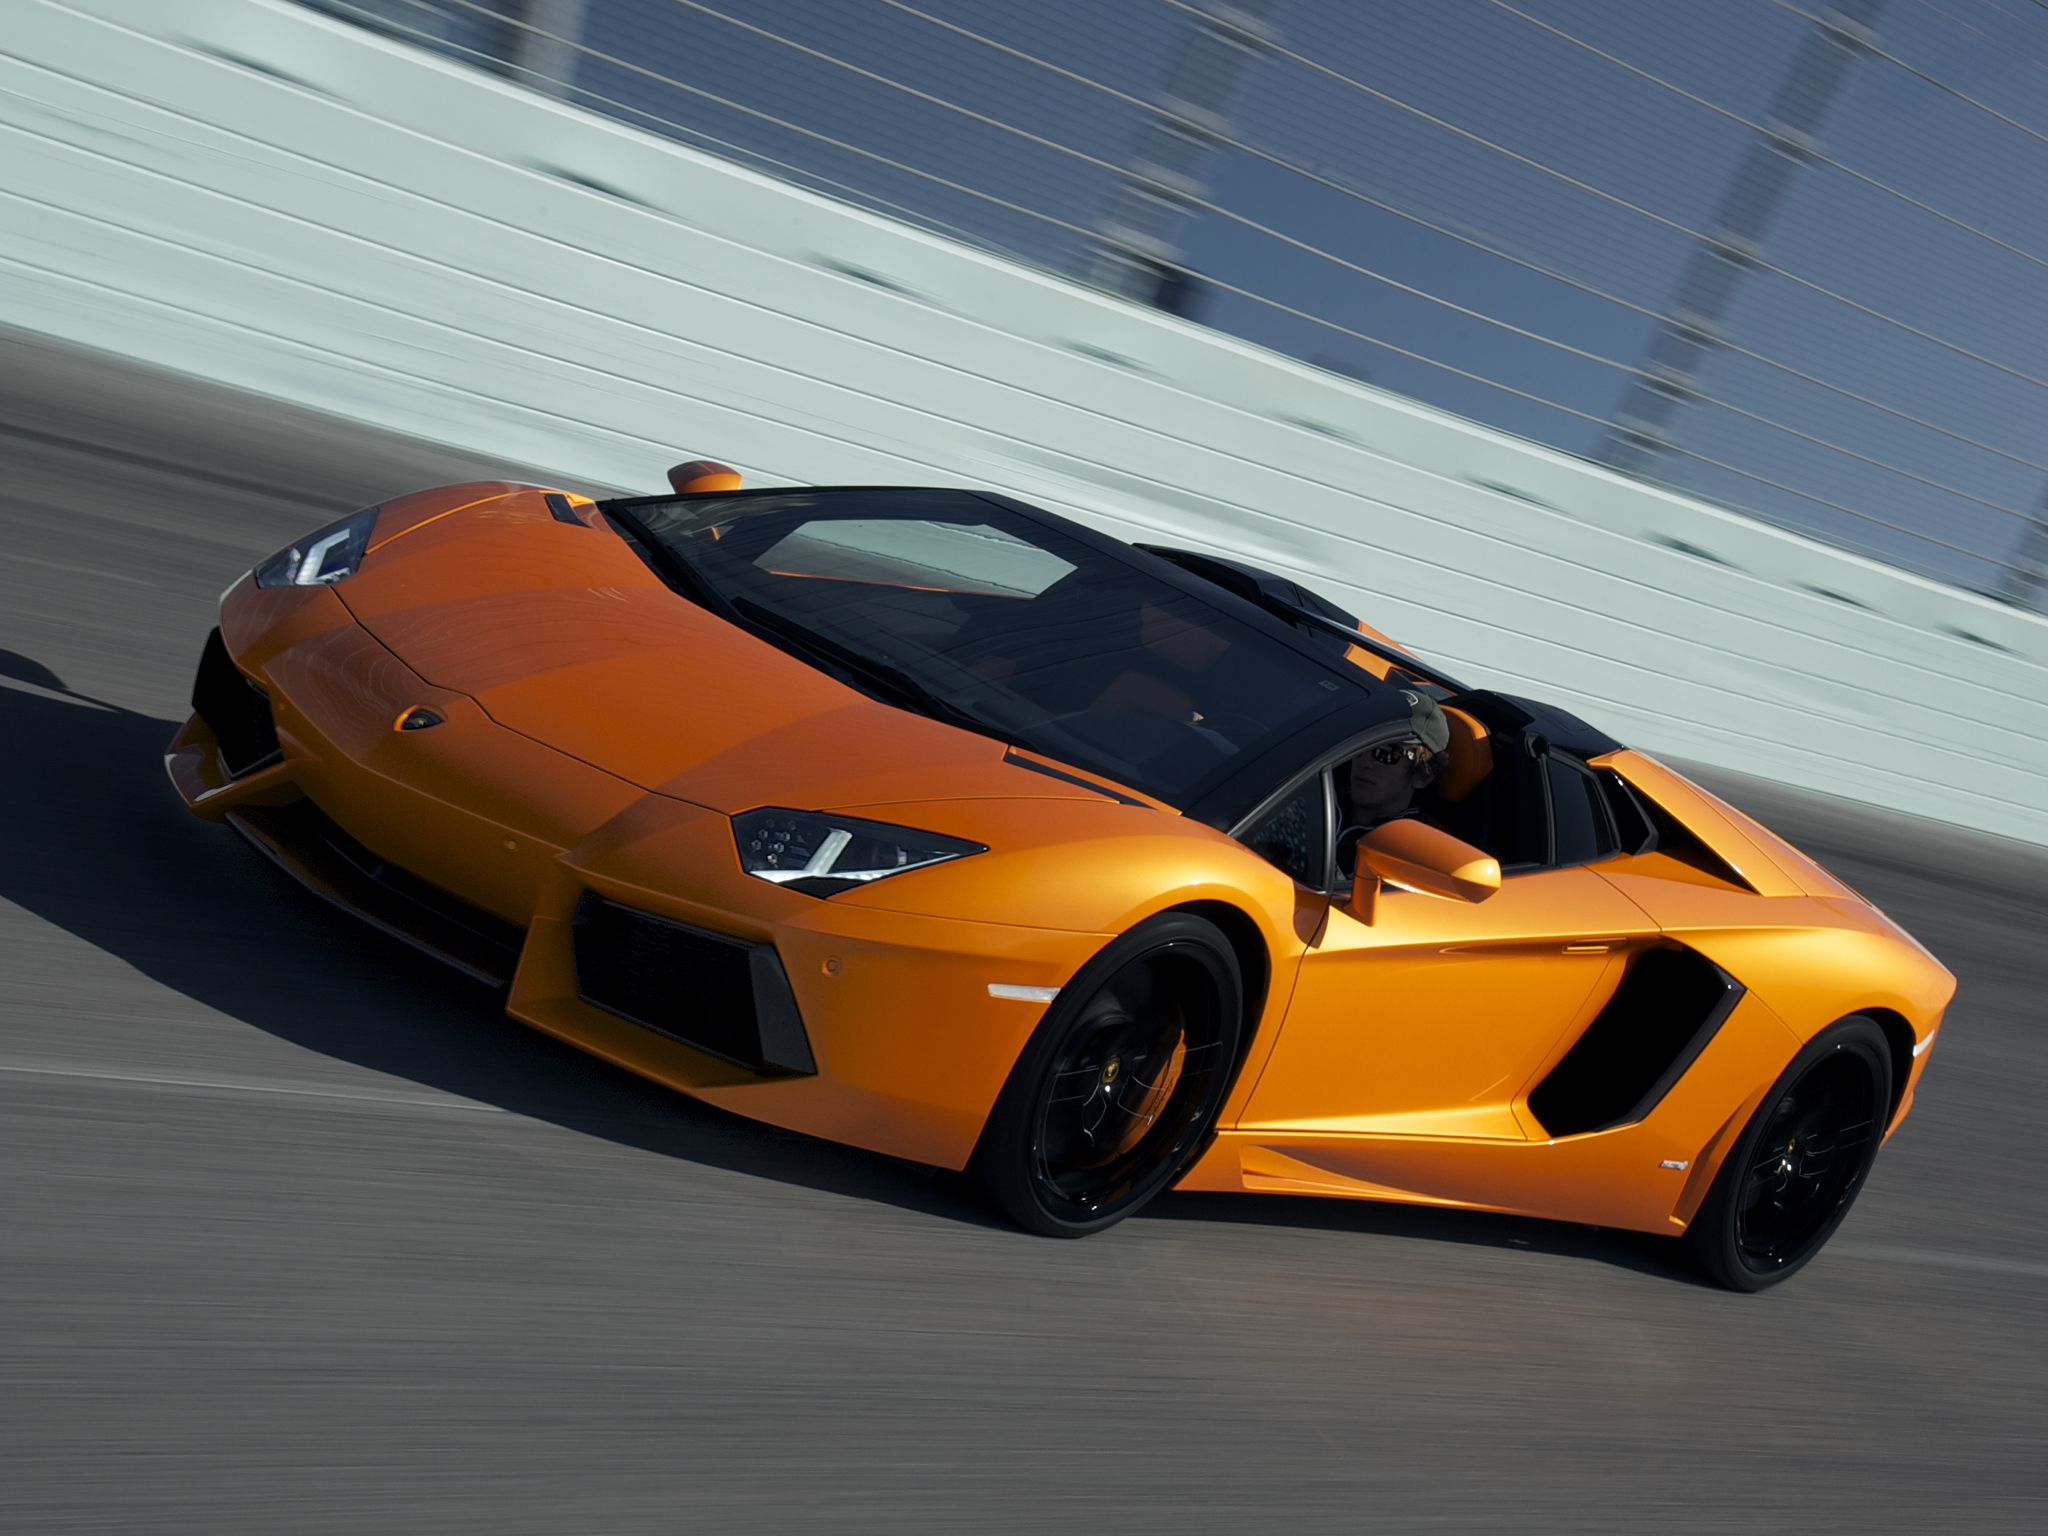 Lamborghini Aventador LP700 4 Roadster supercar orange track wallpaper 2048x1536